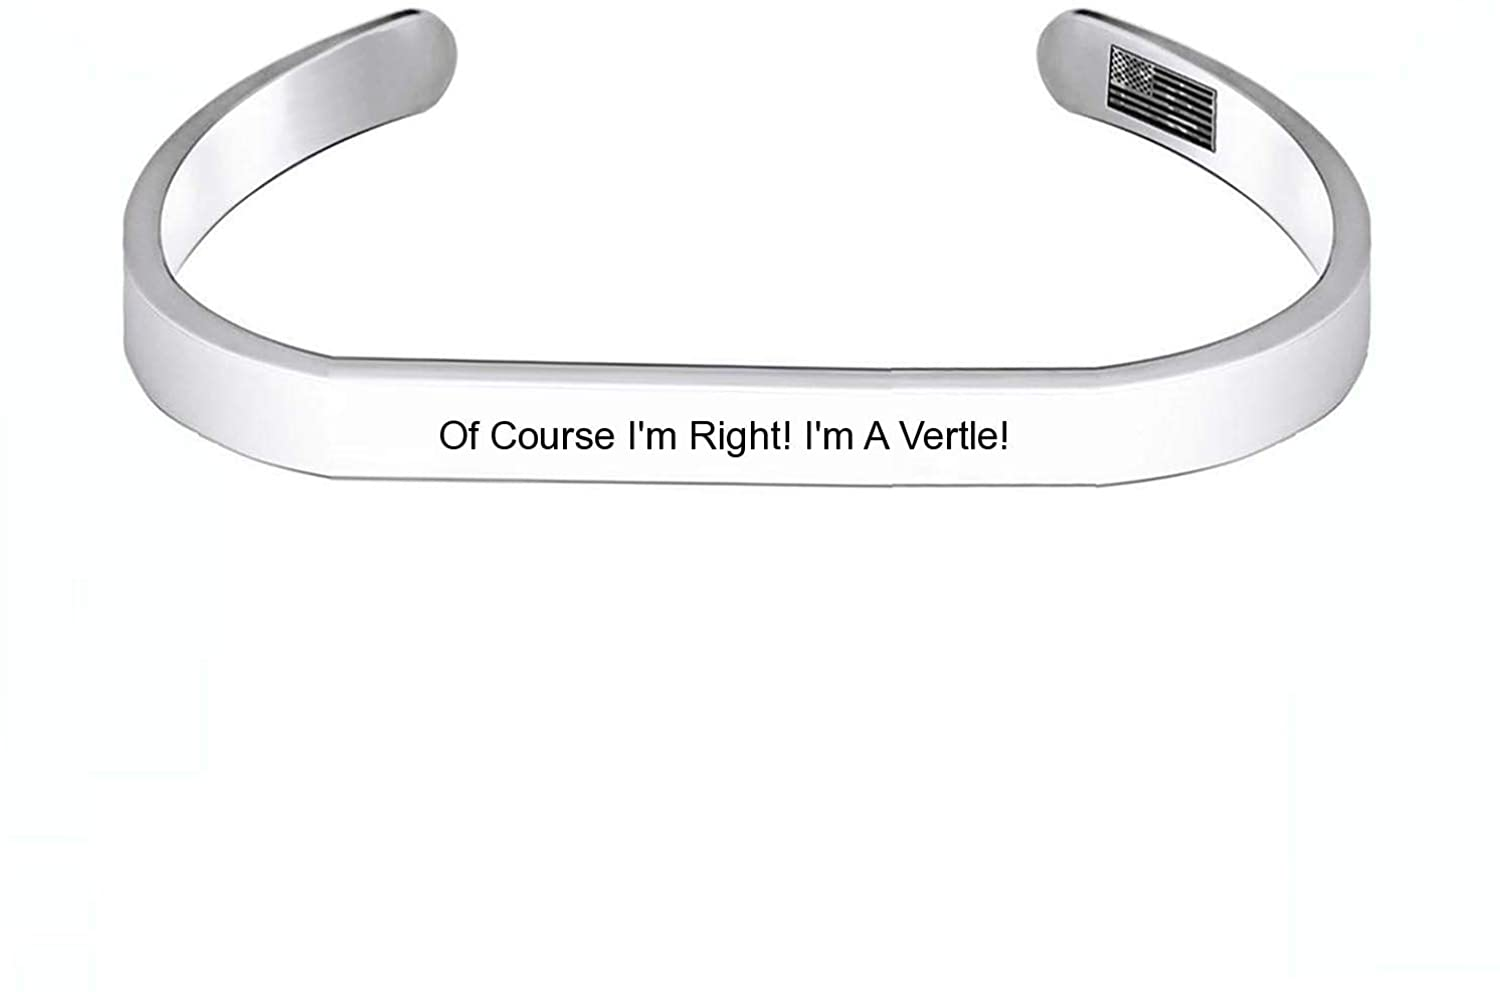 Enhome Cuff Bracelets of Course I'm Right! I'm A Vertle! for Women Birthday Gifts for Her Silver Cuff Bangle American Flag Bracelet